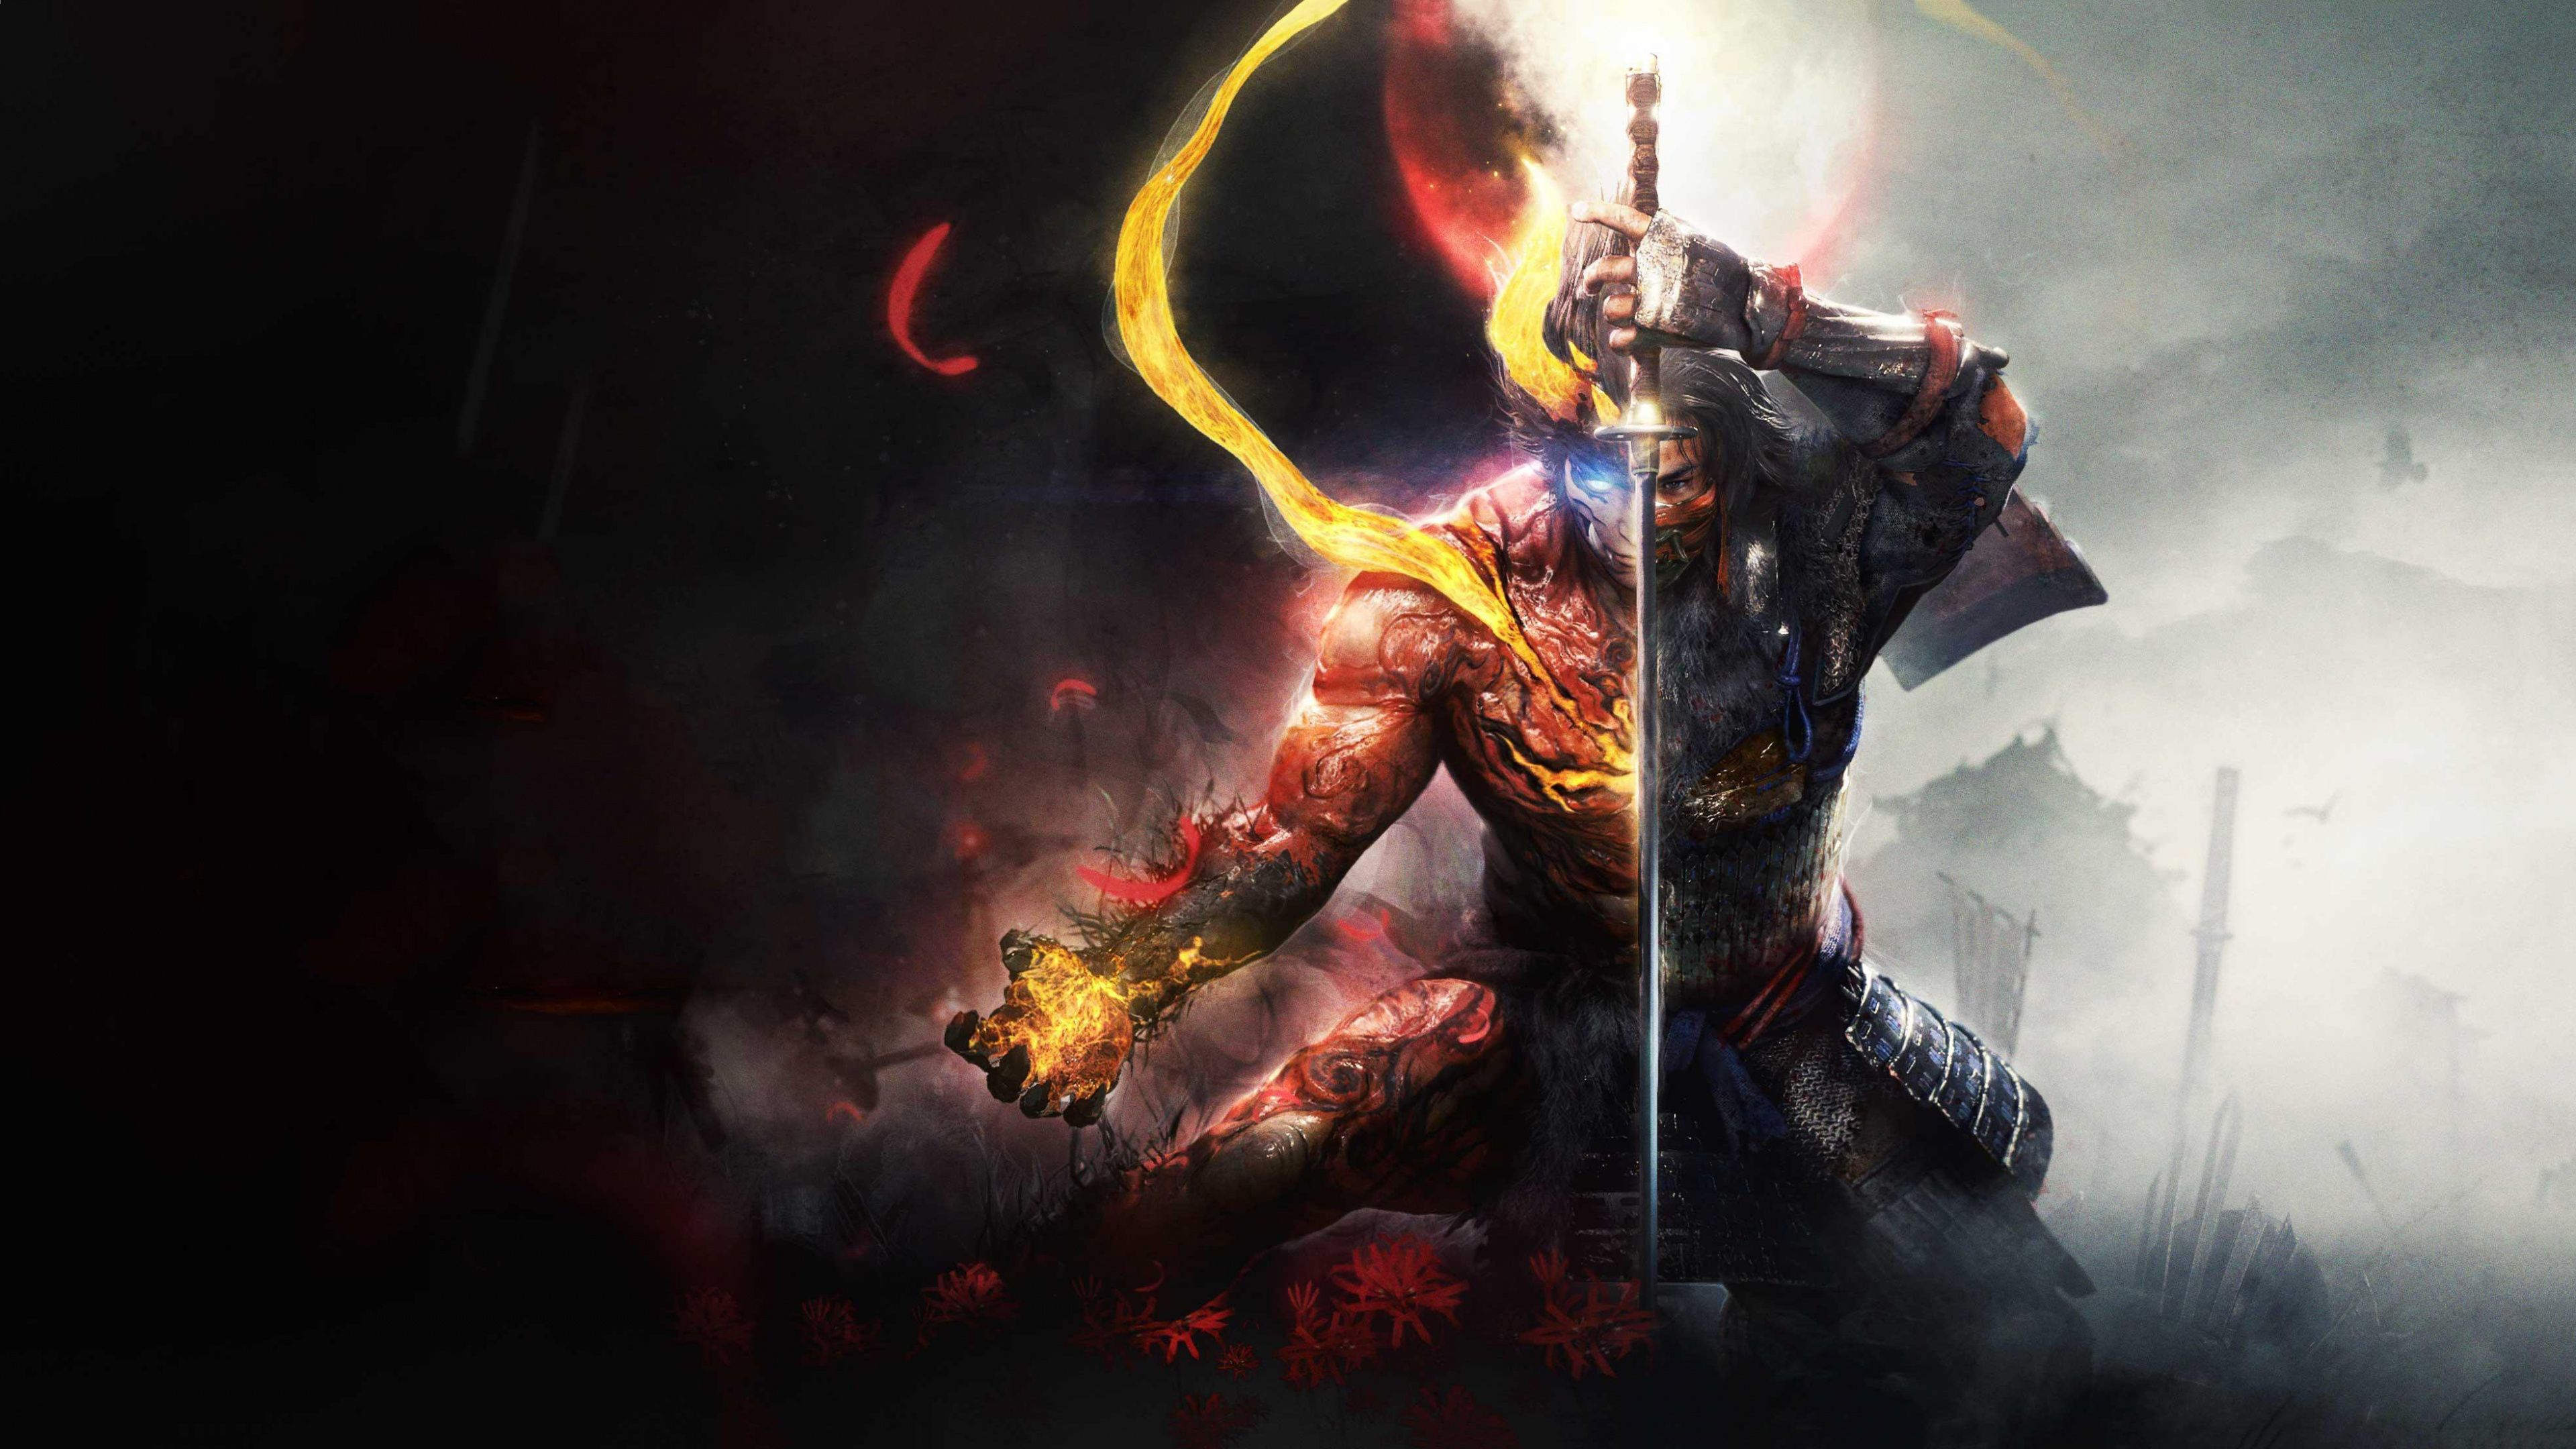 3840x2160 Nioh 2 Video Game Warrior Artwork Wallpaper 3840x2160 Wallpaper Beautiful Wallpapers Game Reviews